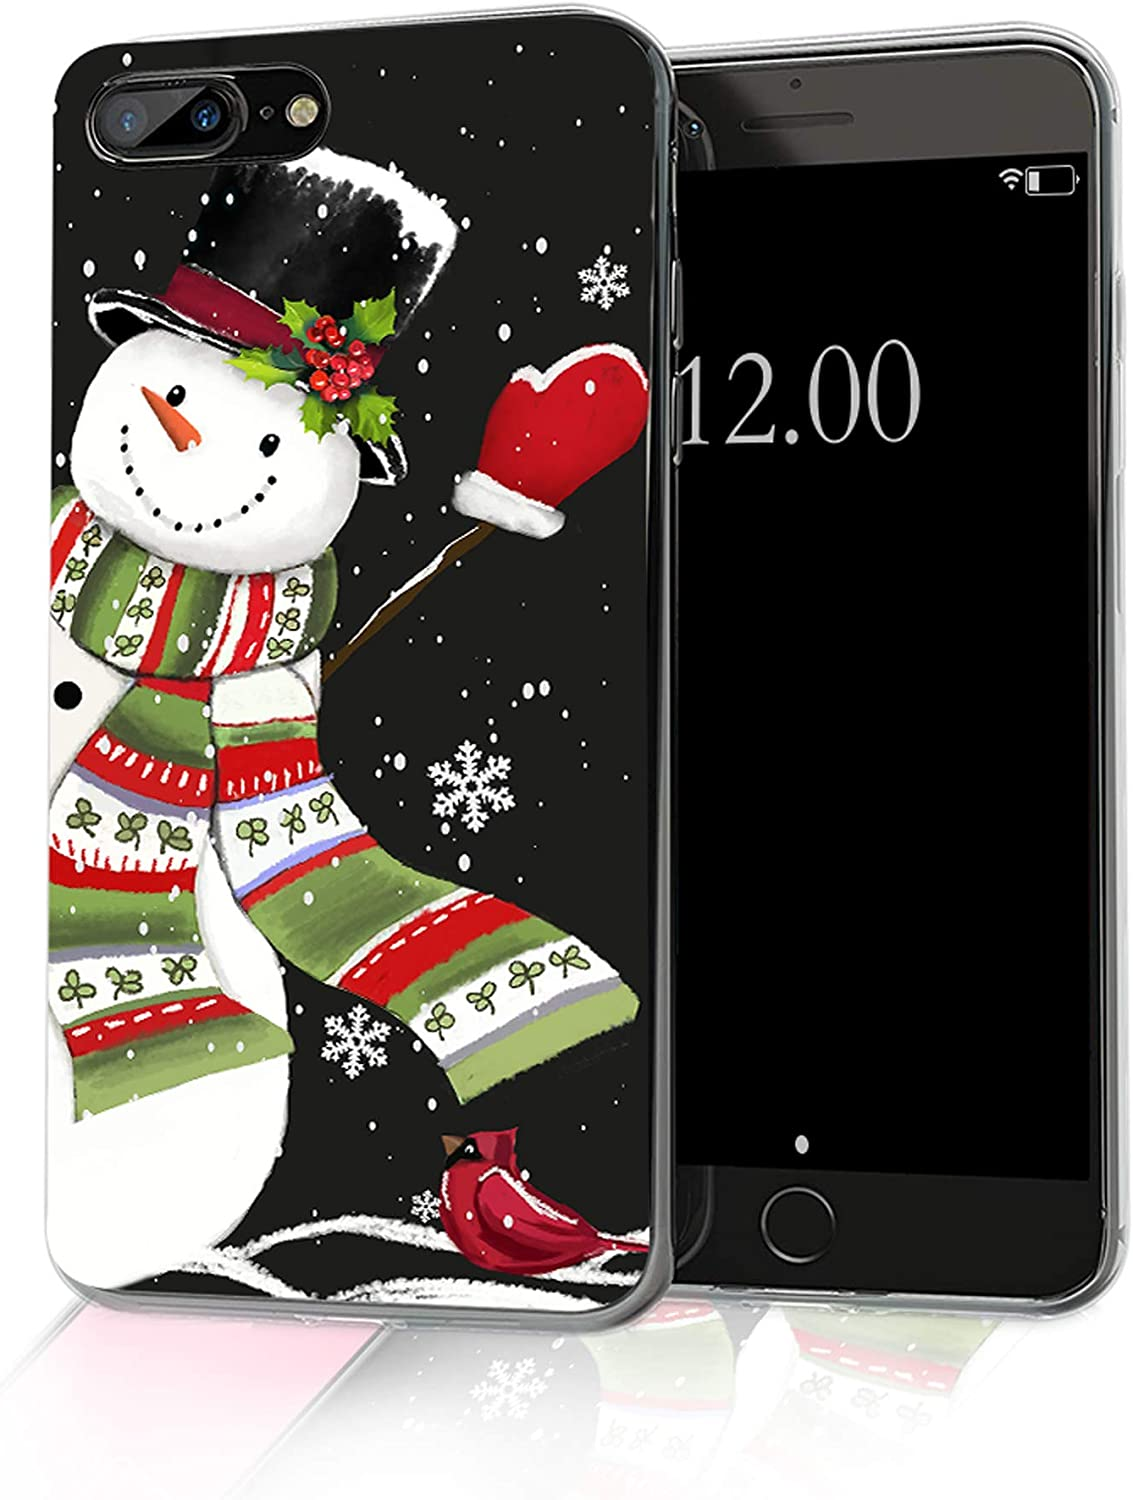 cocomong Snowman Christmas Phone Case Compatible with iPhone 8 Plus Christmas Case iPhone 7 Plus, Cute Winter Gifts for Women Girls Boys Men Slim Soft TPU Clear Protective Cover 5.5